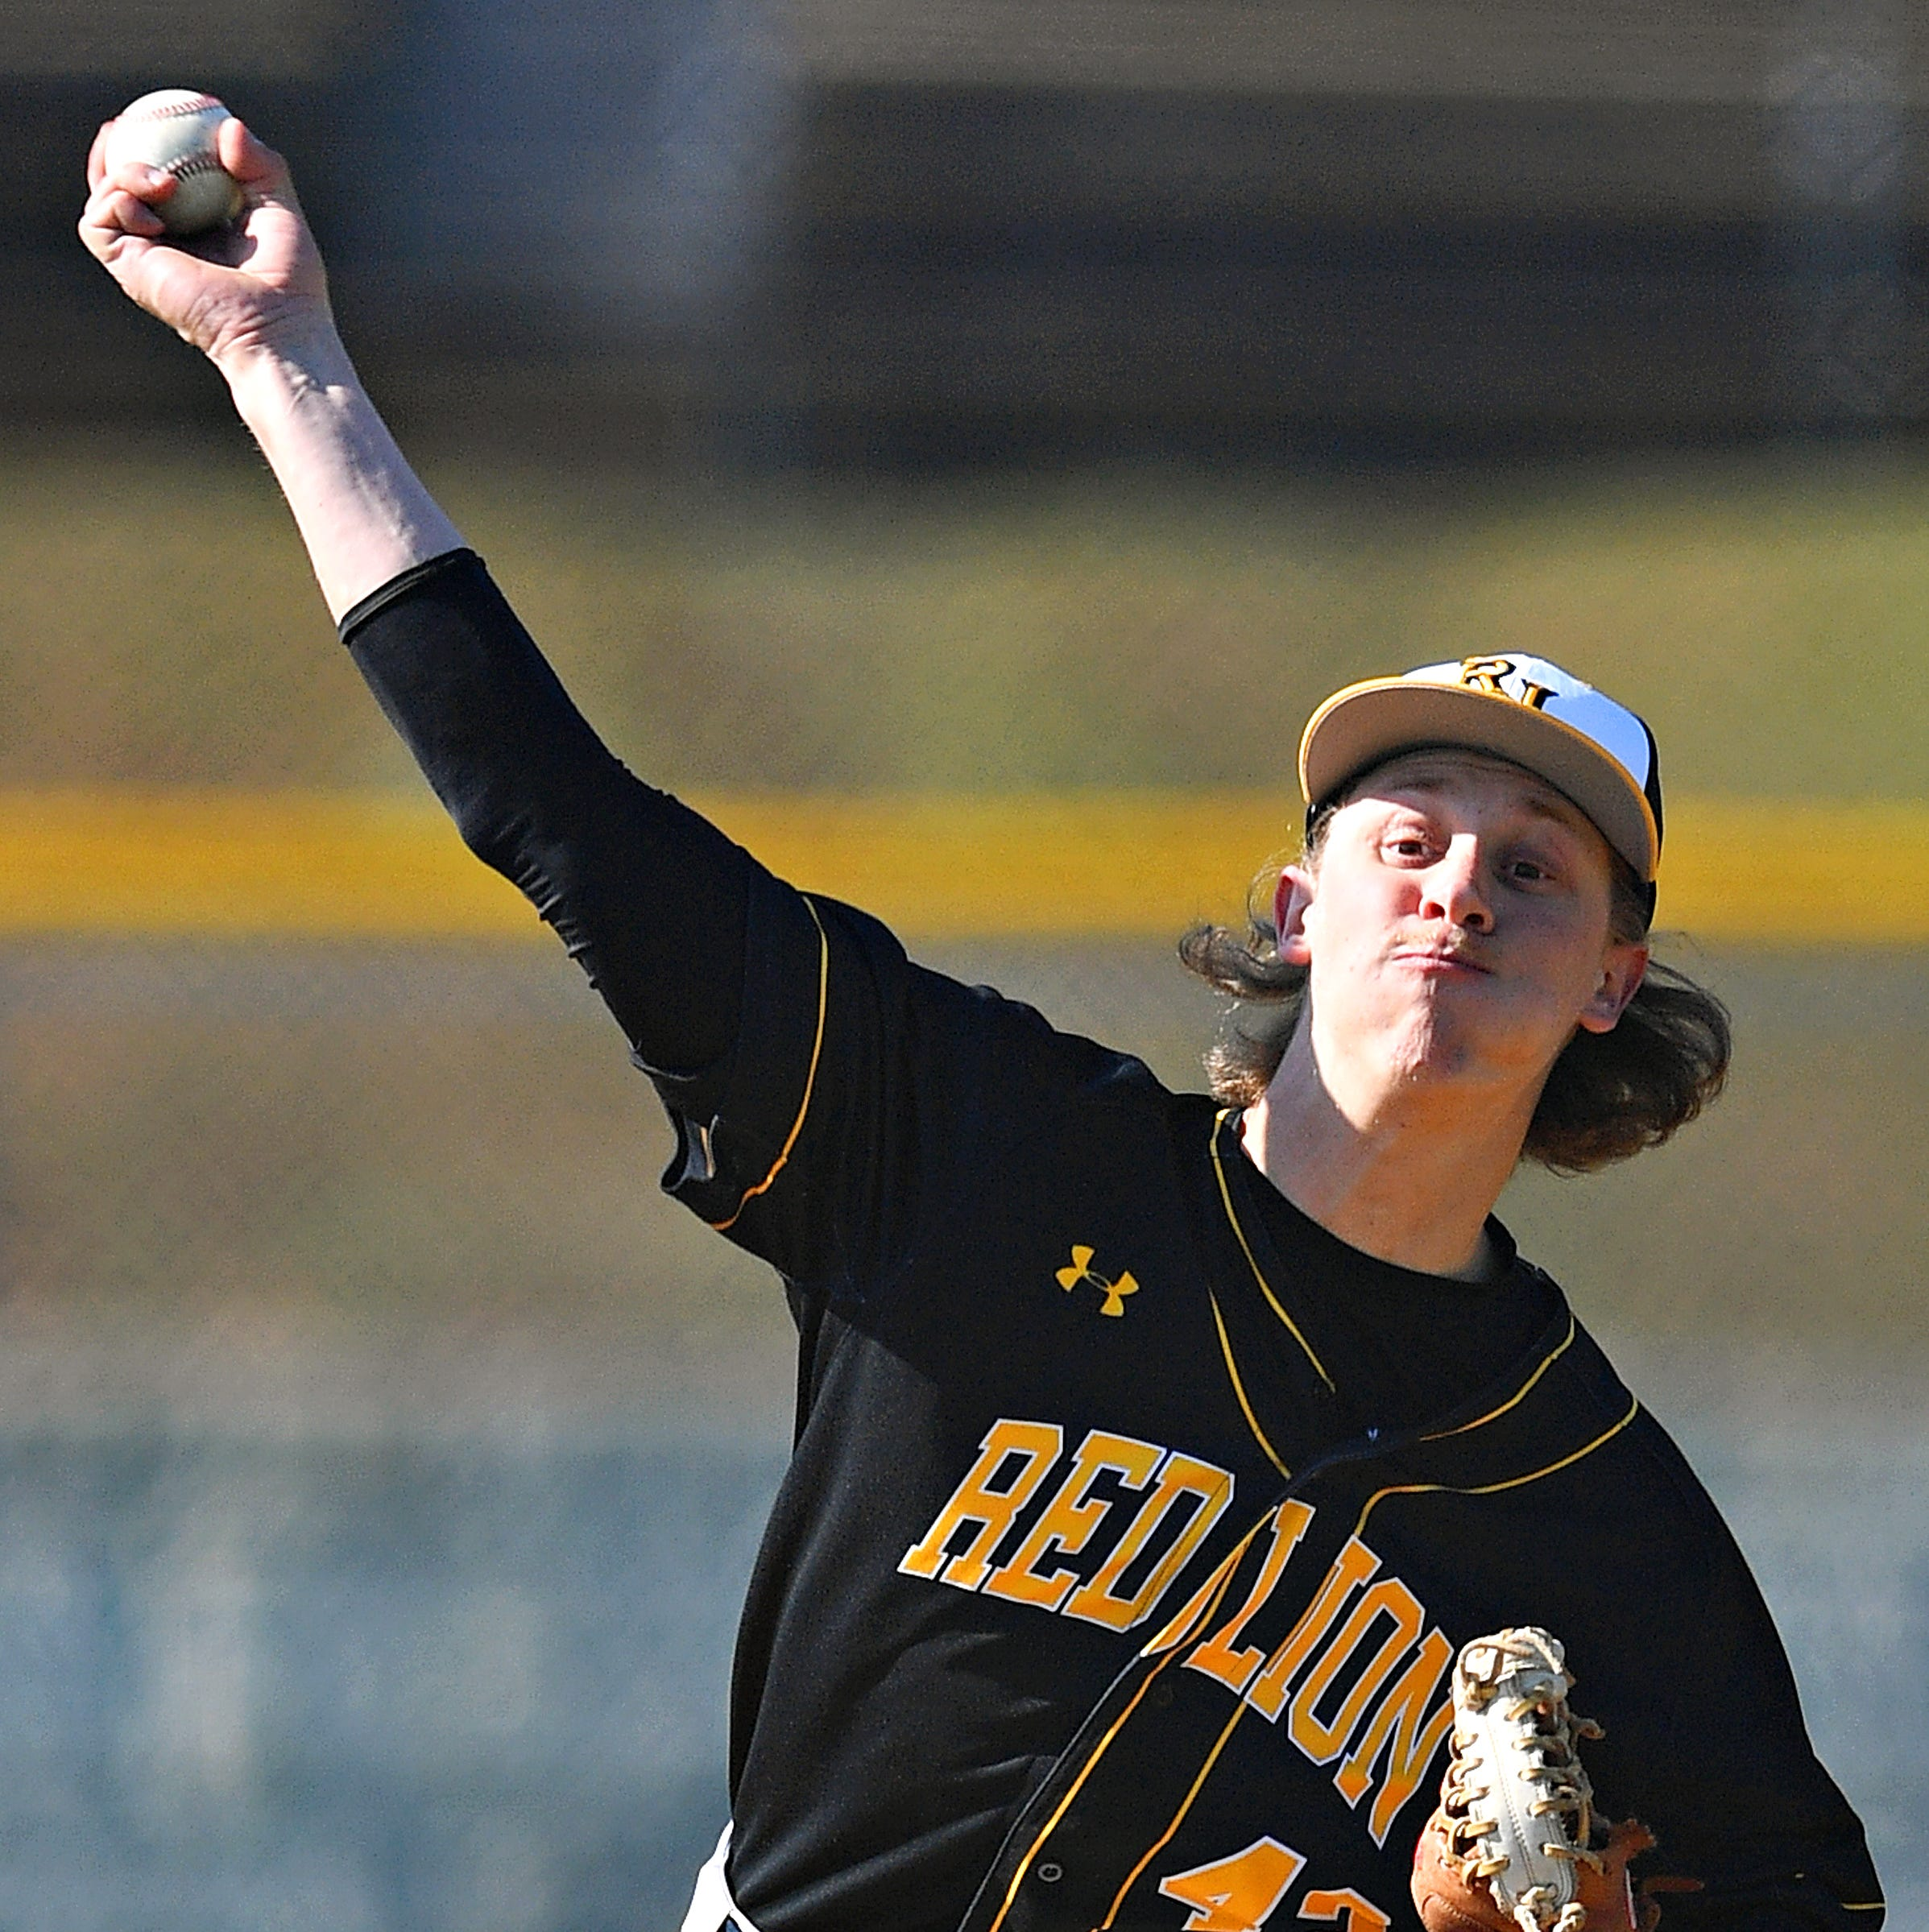 PREP ROUNDUP, WEDNESDAY, APRIL 3: C.J. Czerwinski pitches Red Lion over Dallastown